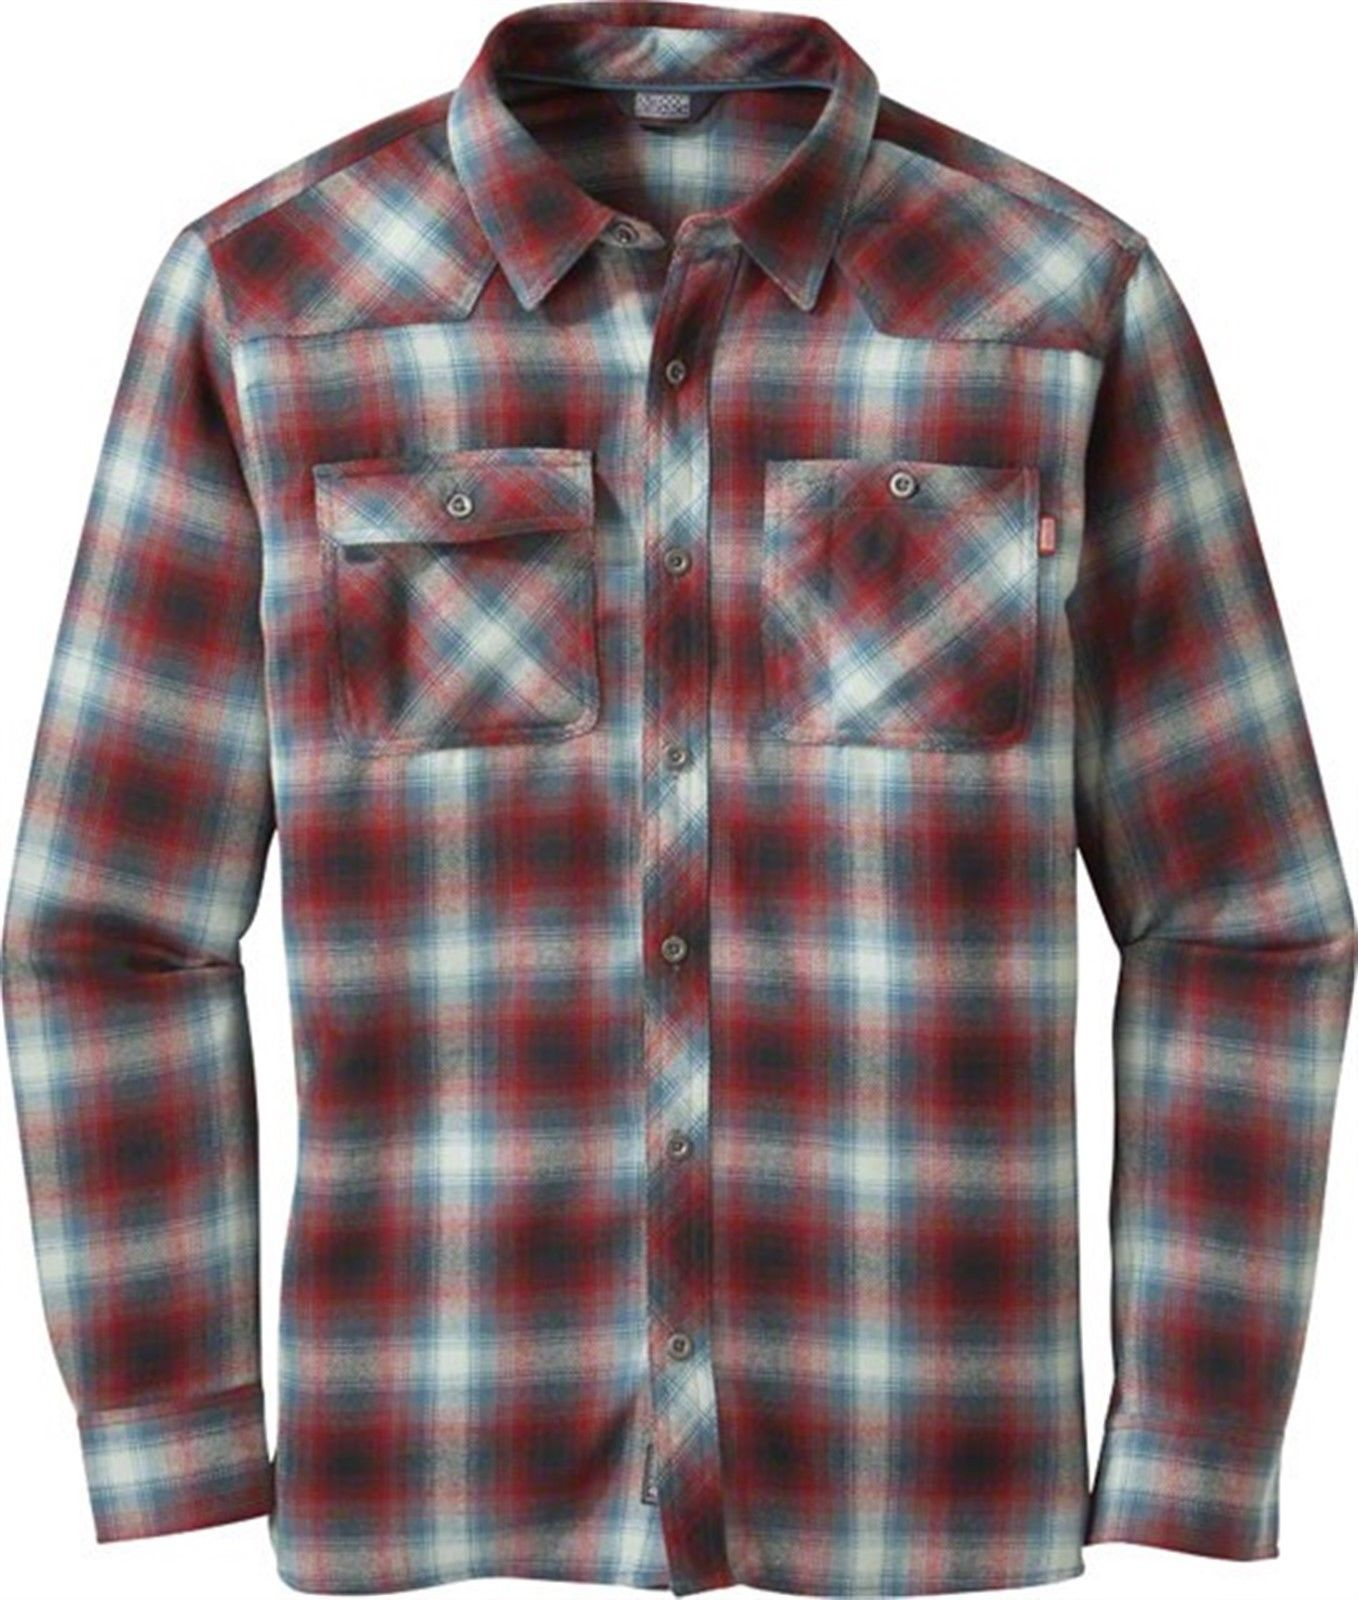 Flannel t shirts  Casual TShirts and Tops  Outdoor Research Feedback Men S